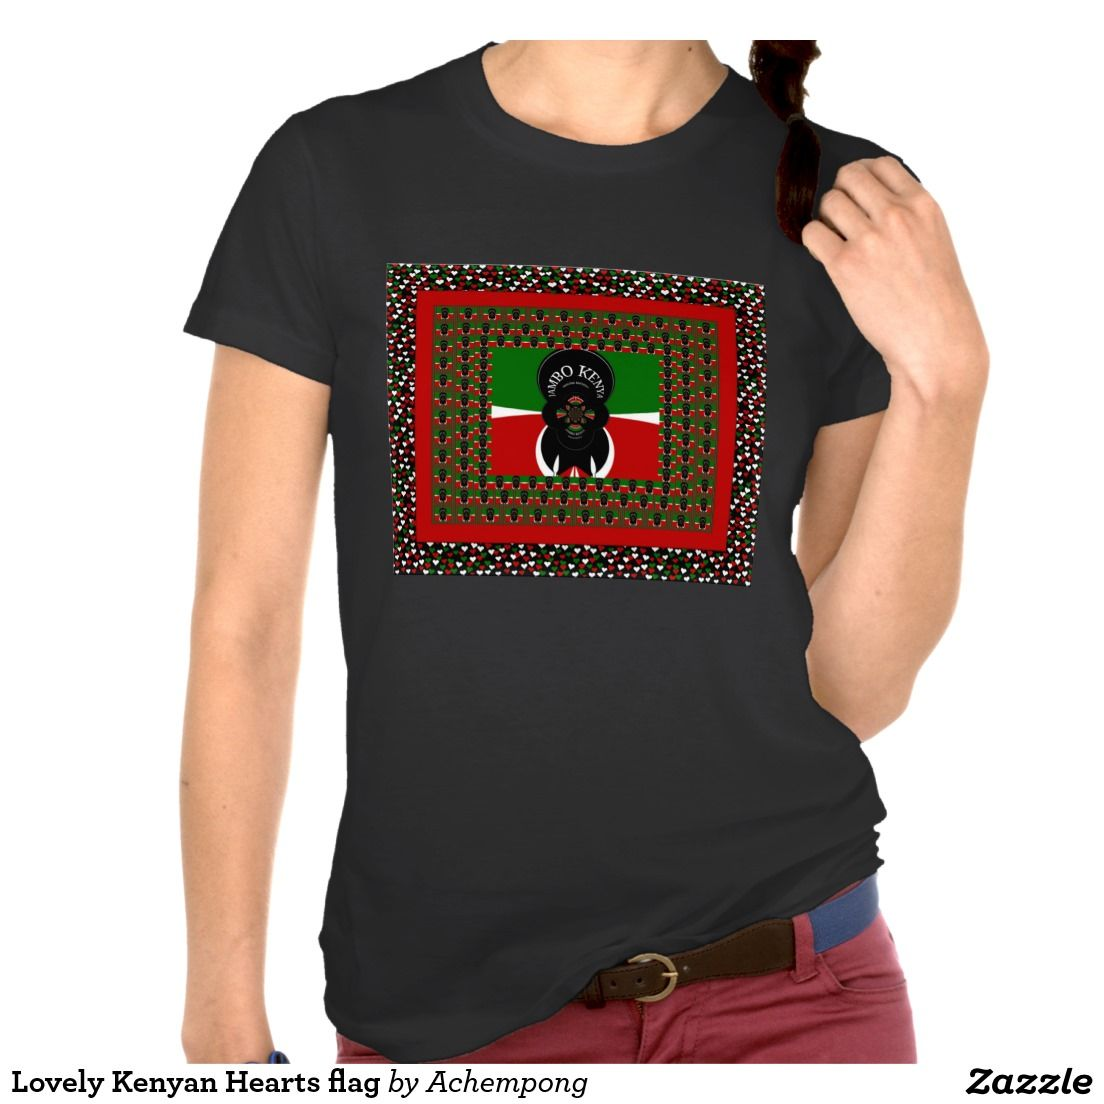 Design t shirt zazzle - Lovely Kenyan Hearts Flag T Shirt